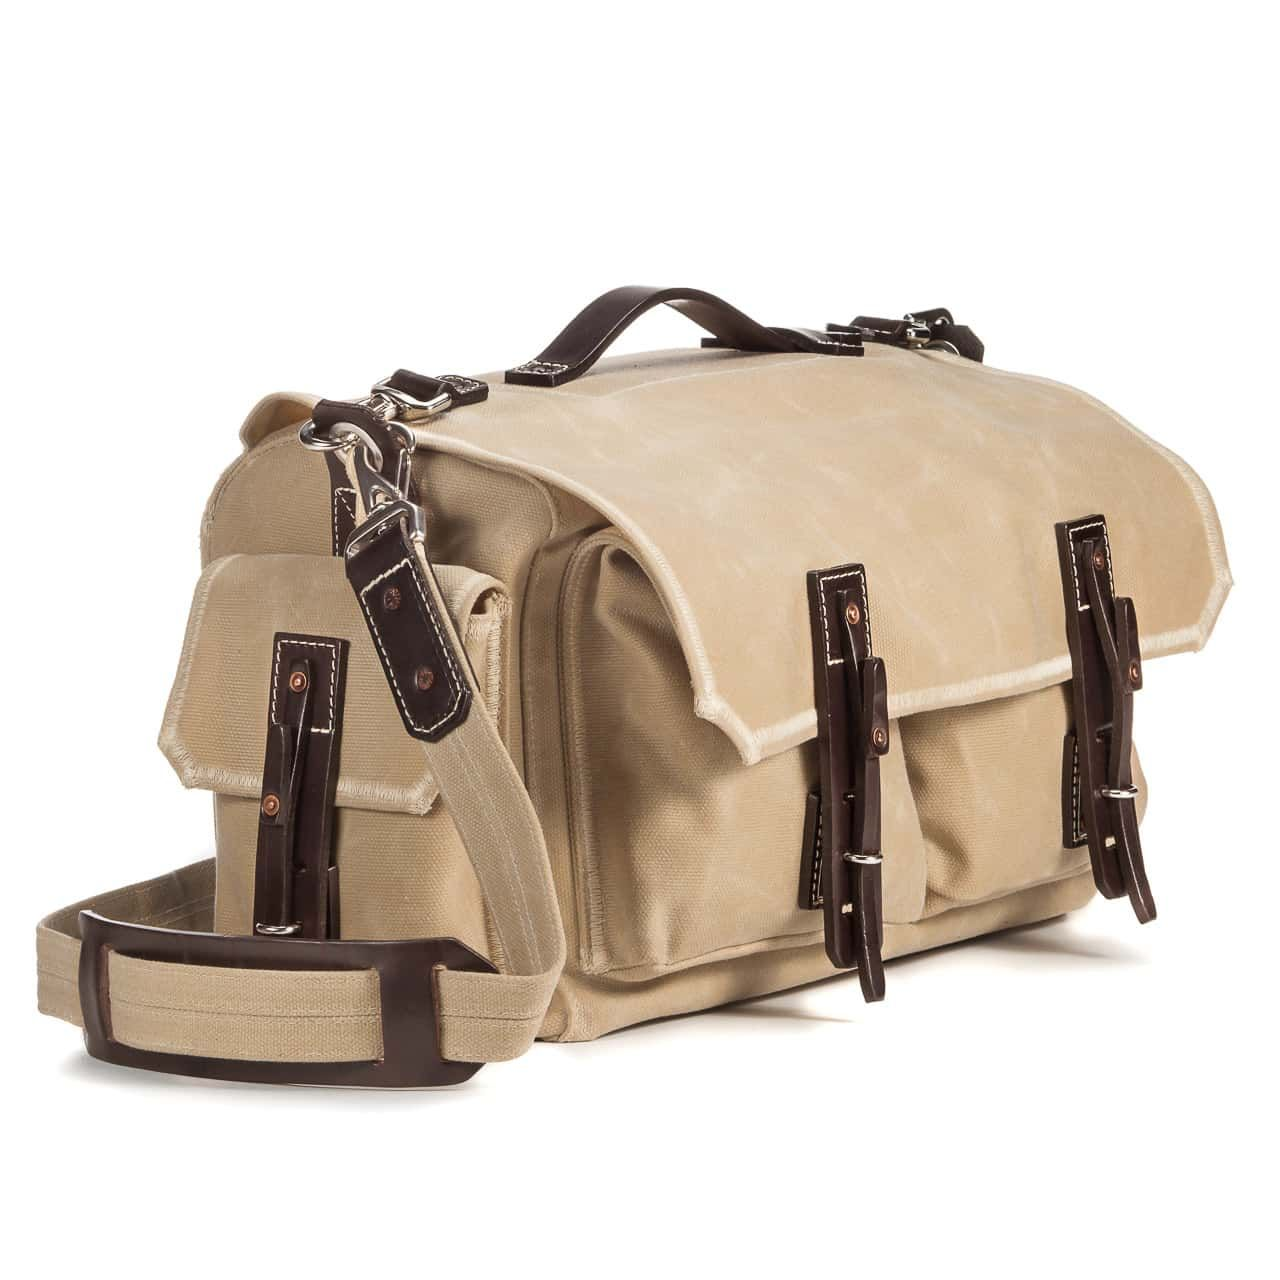 5 Pocket Duffel in Color Sand Front Angle